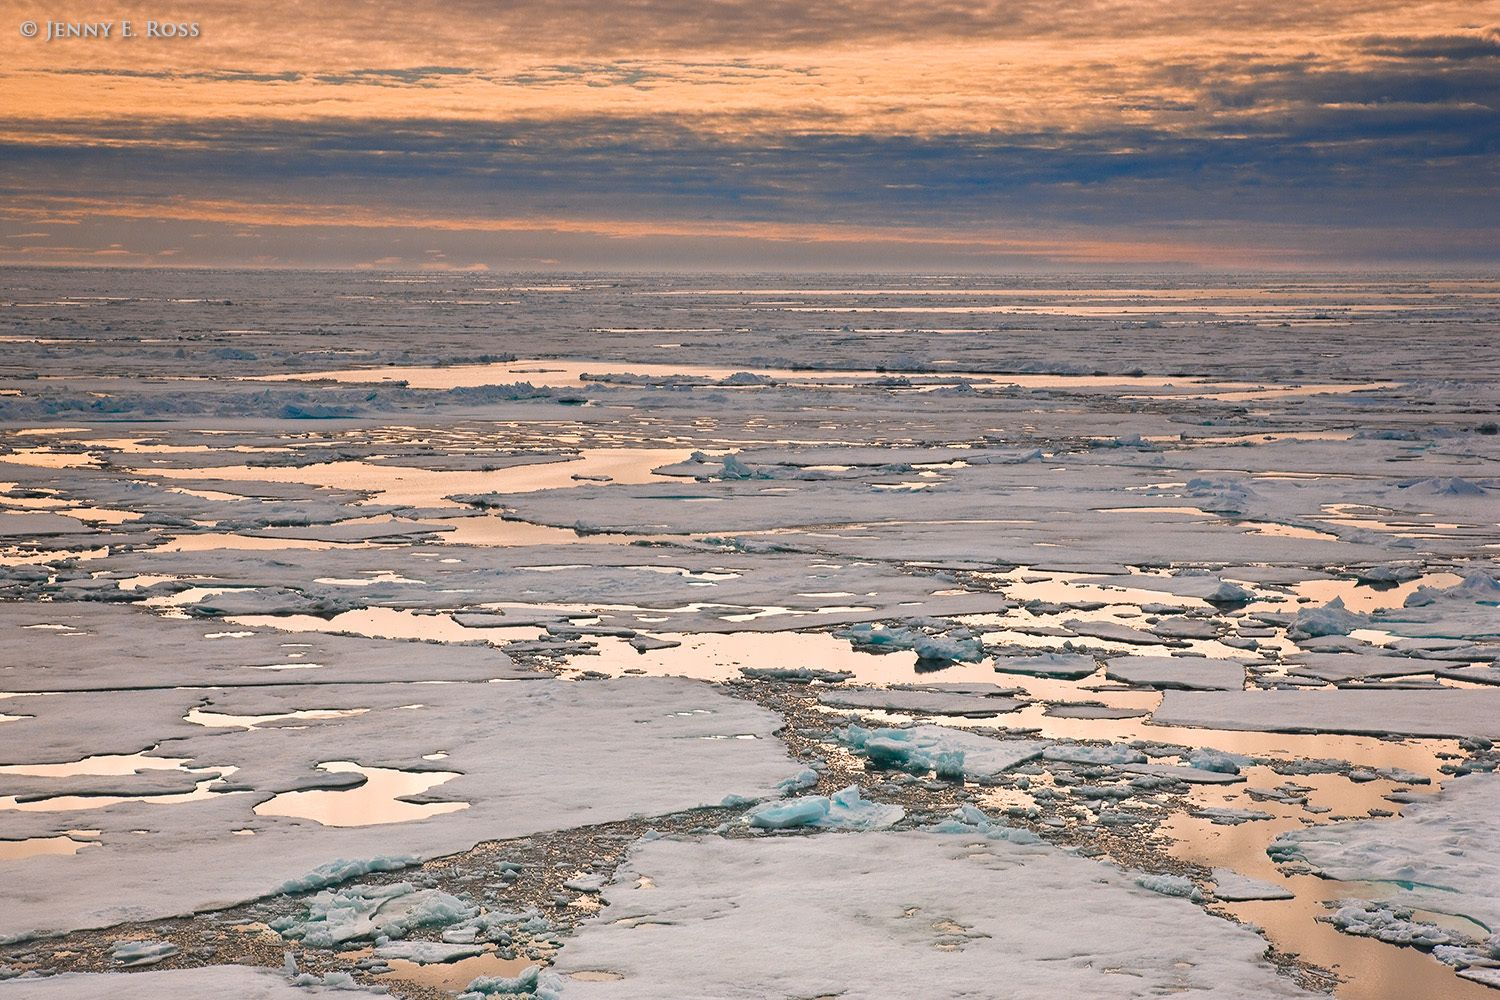 Melting Arctic sea ice in late summer.